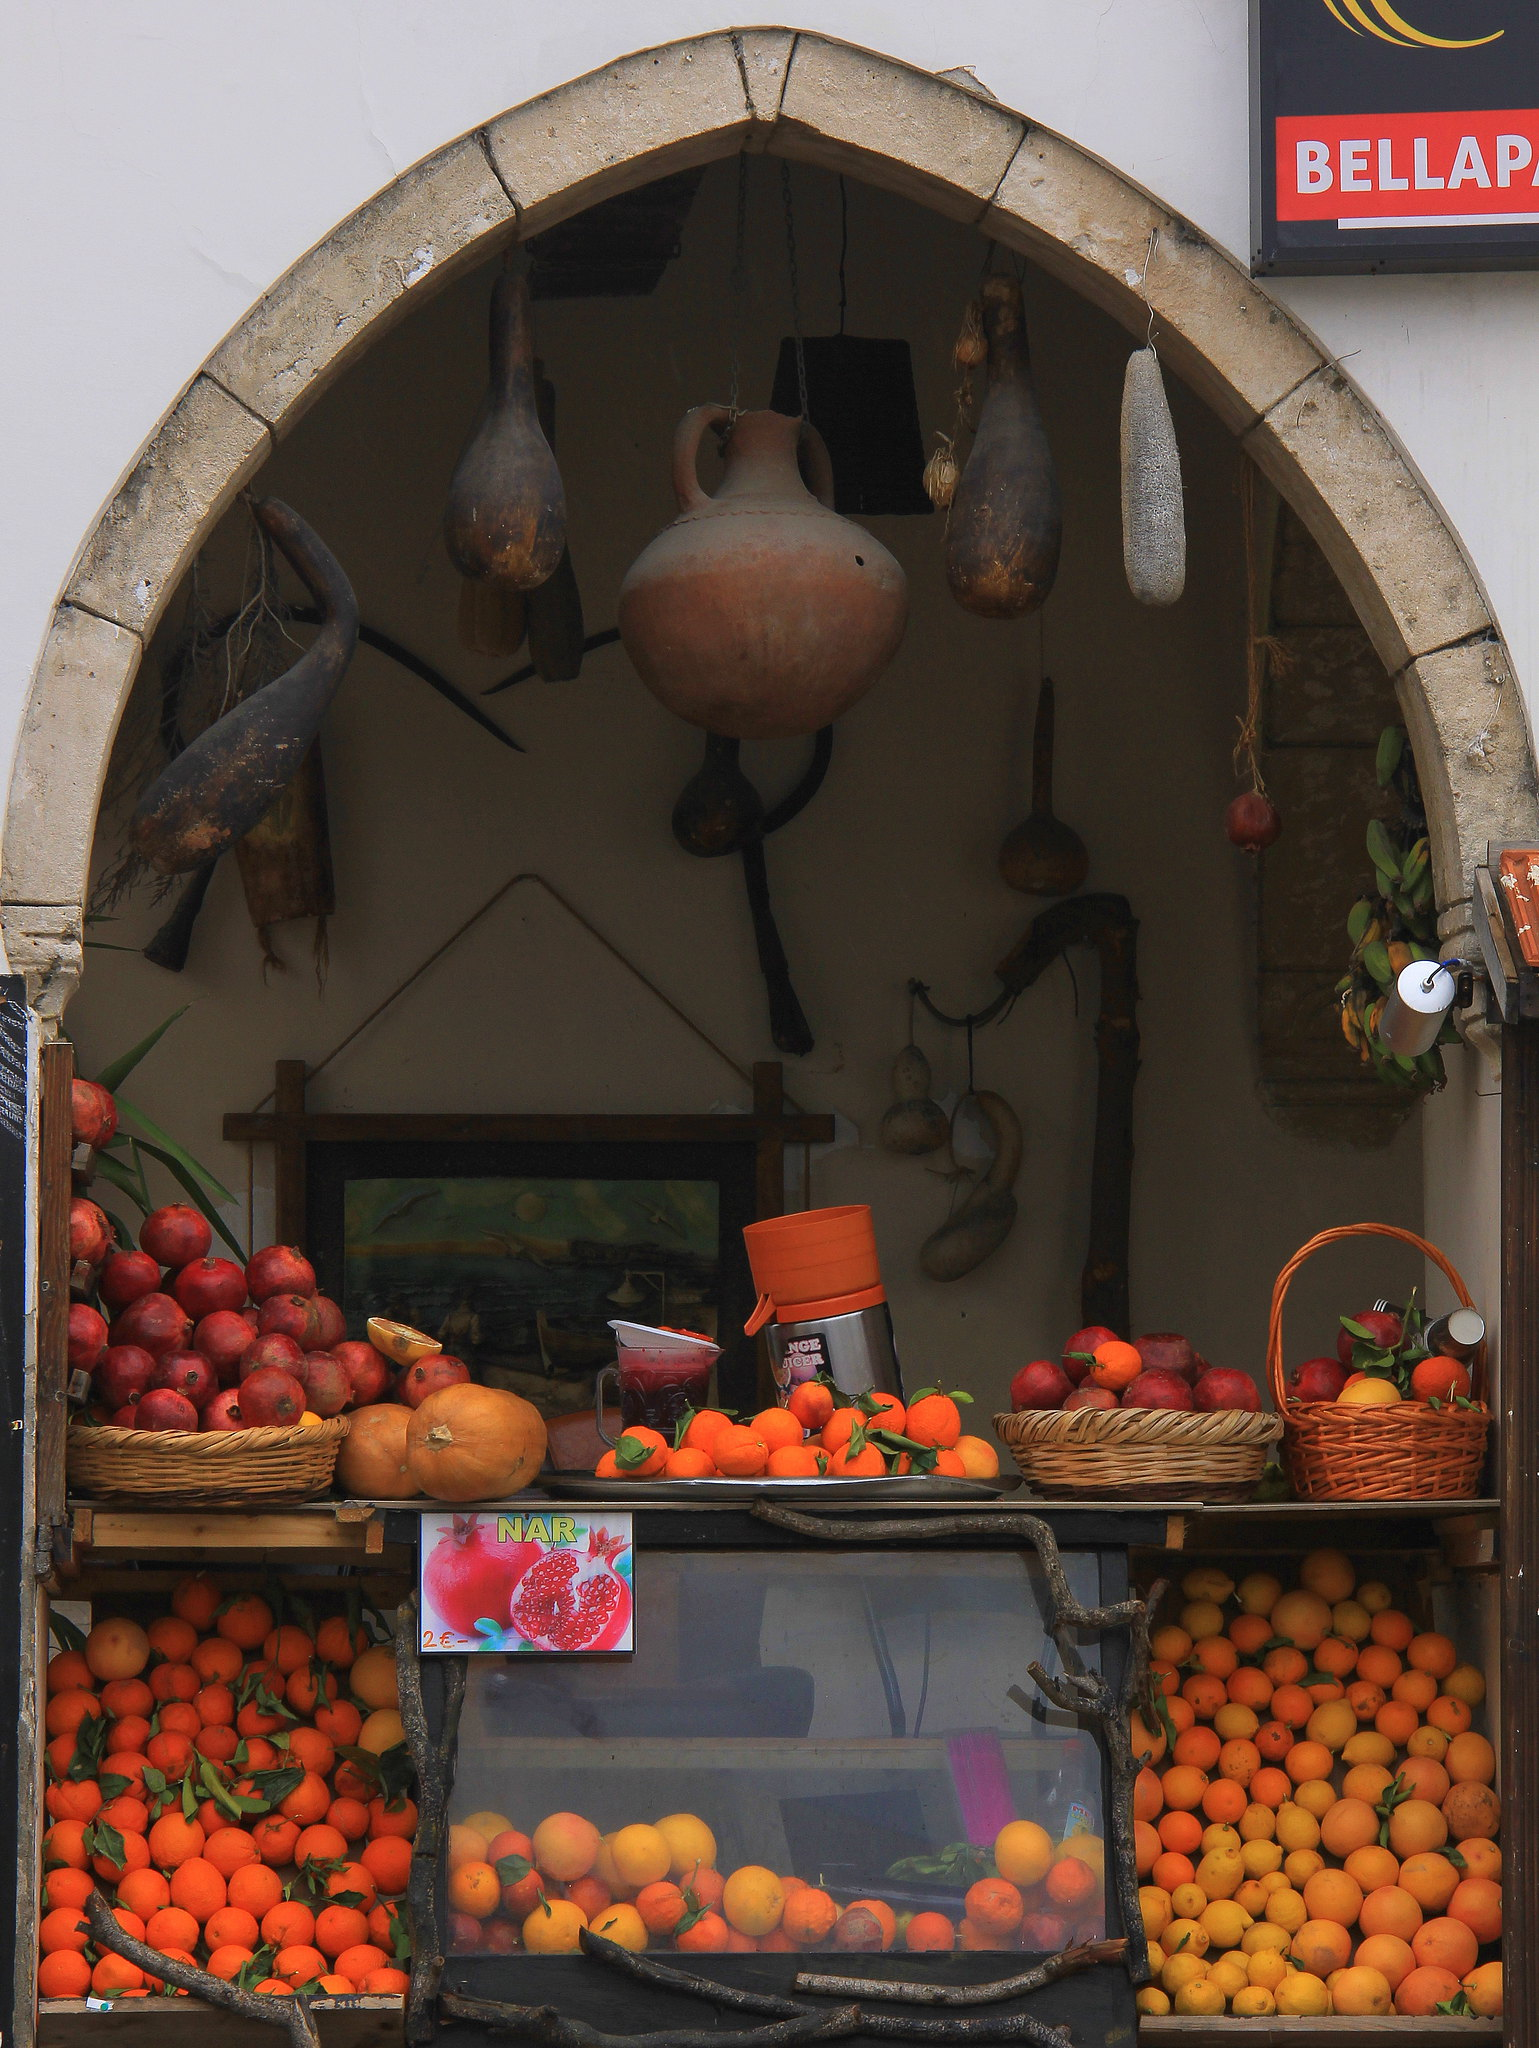 Fruits shop near Bella Pais monastery in Northern Cyprus